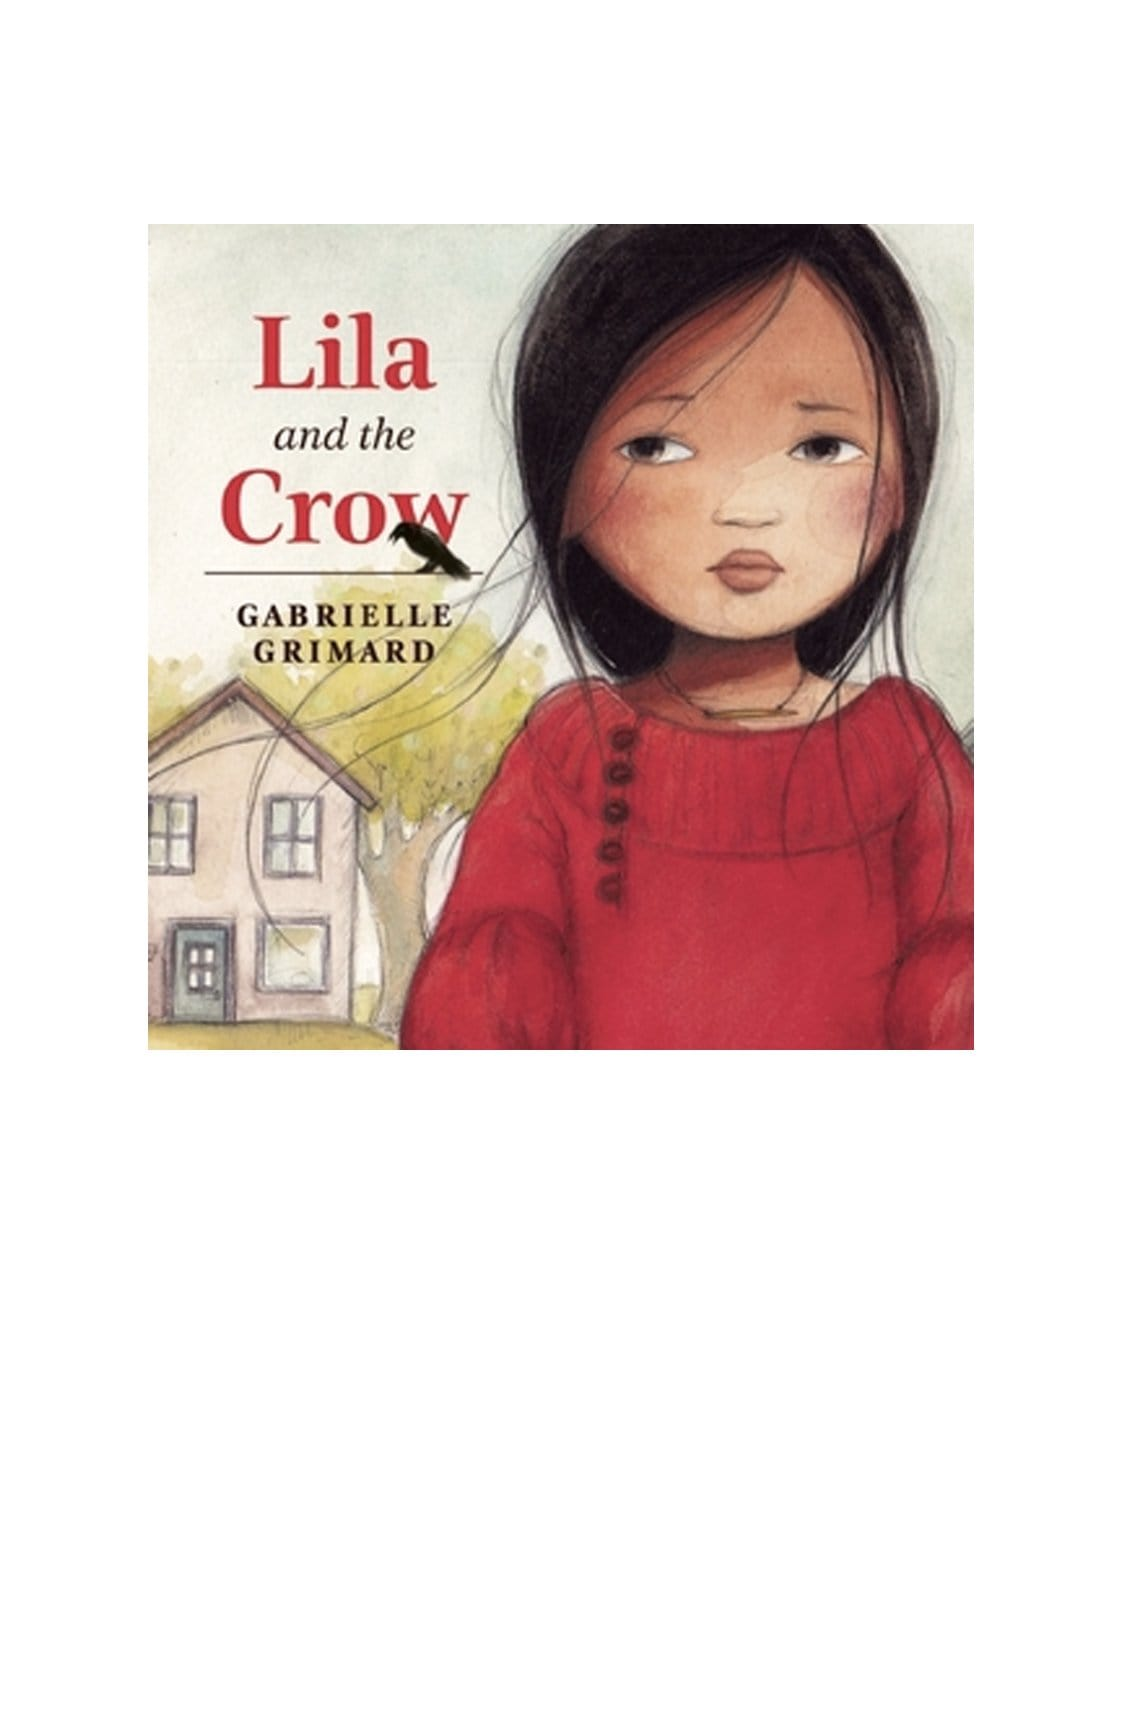 Lila and the Crow - Hello Little Birdie